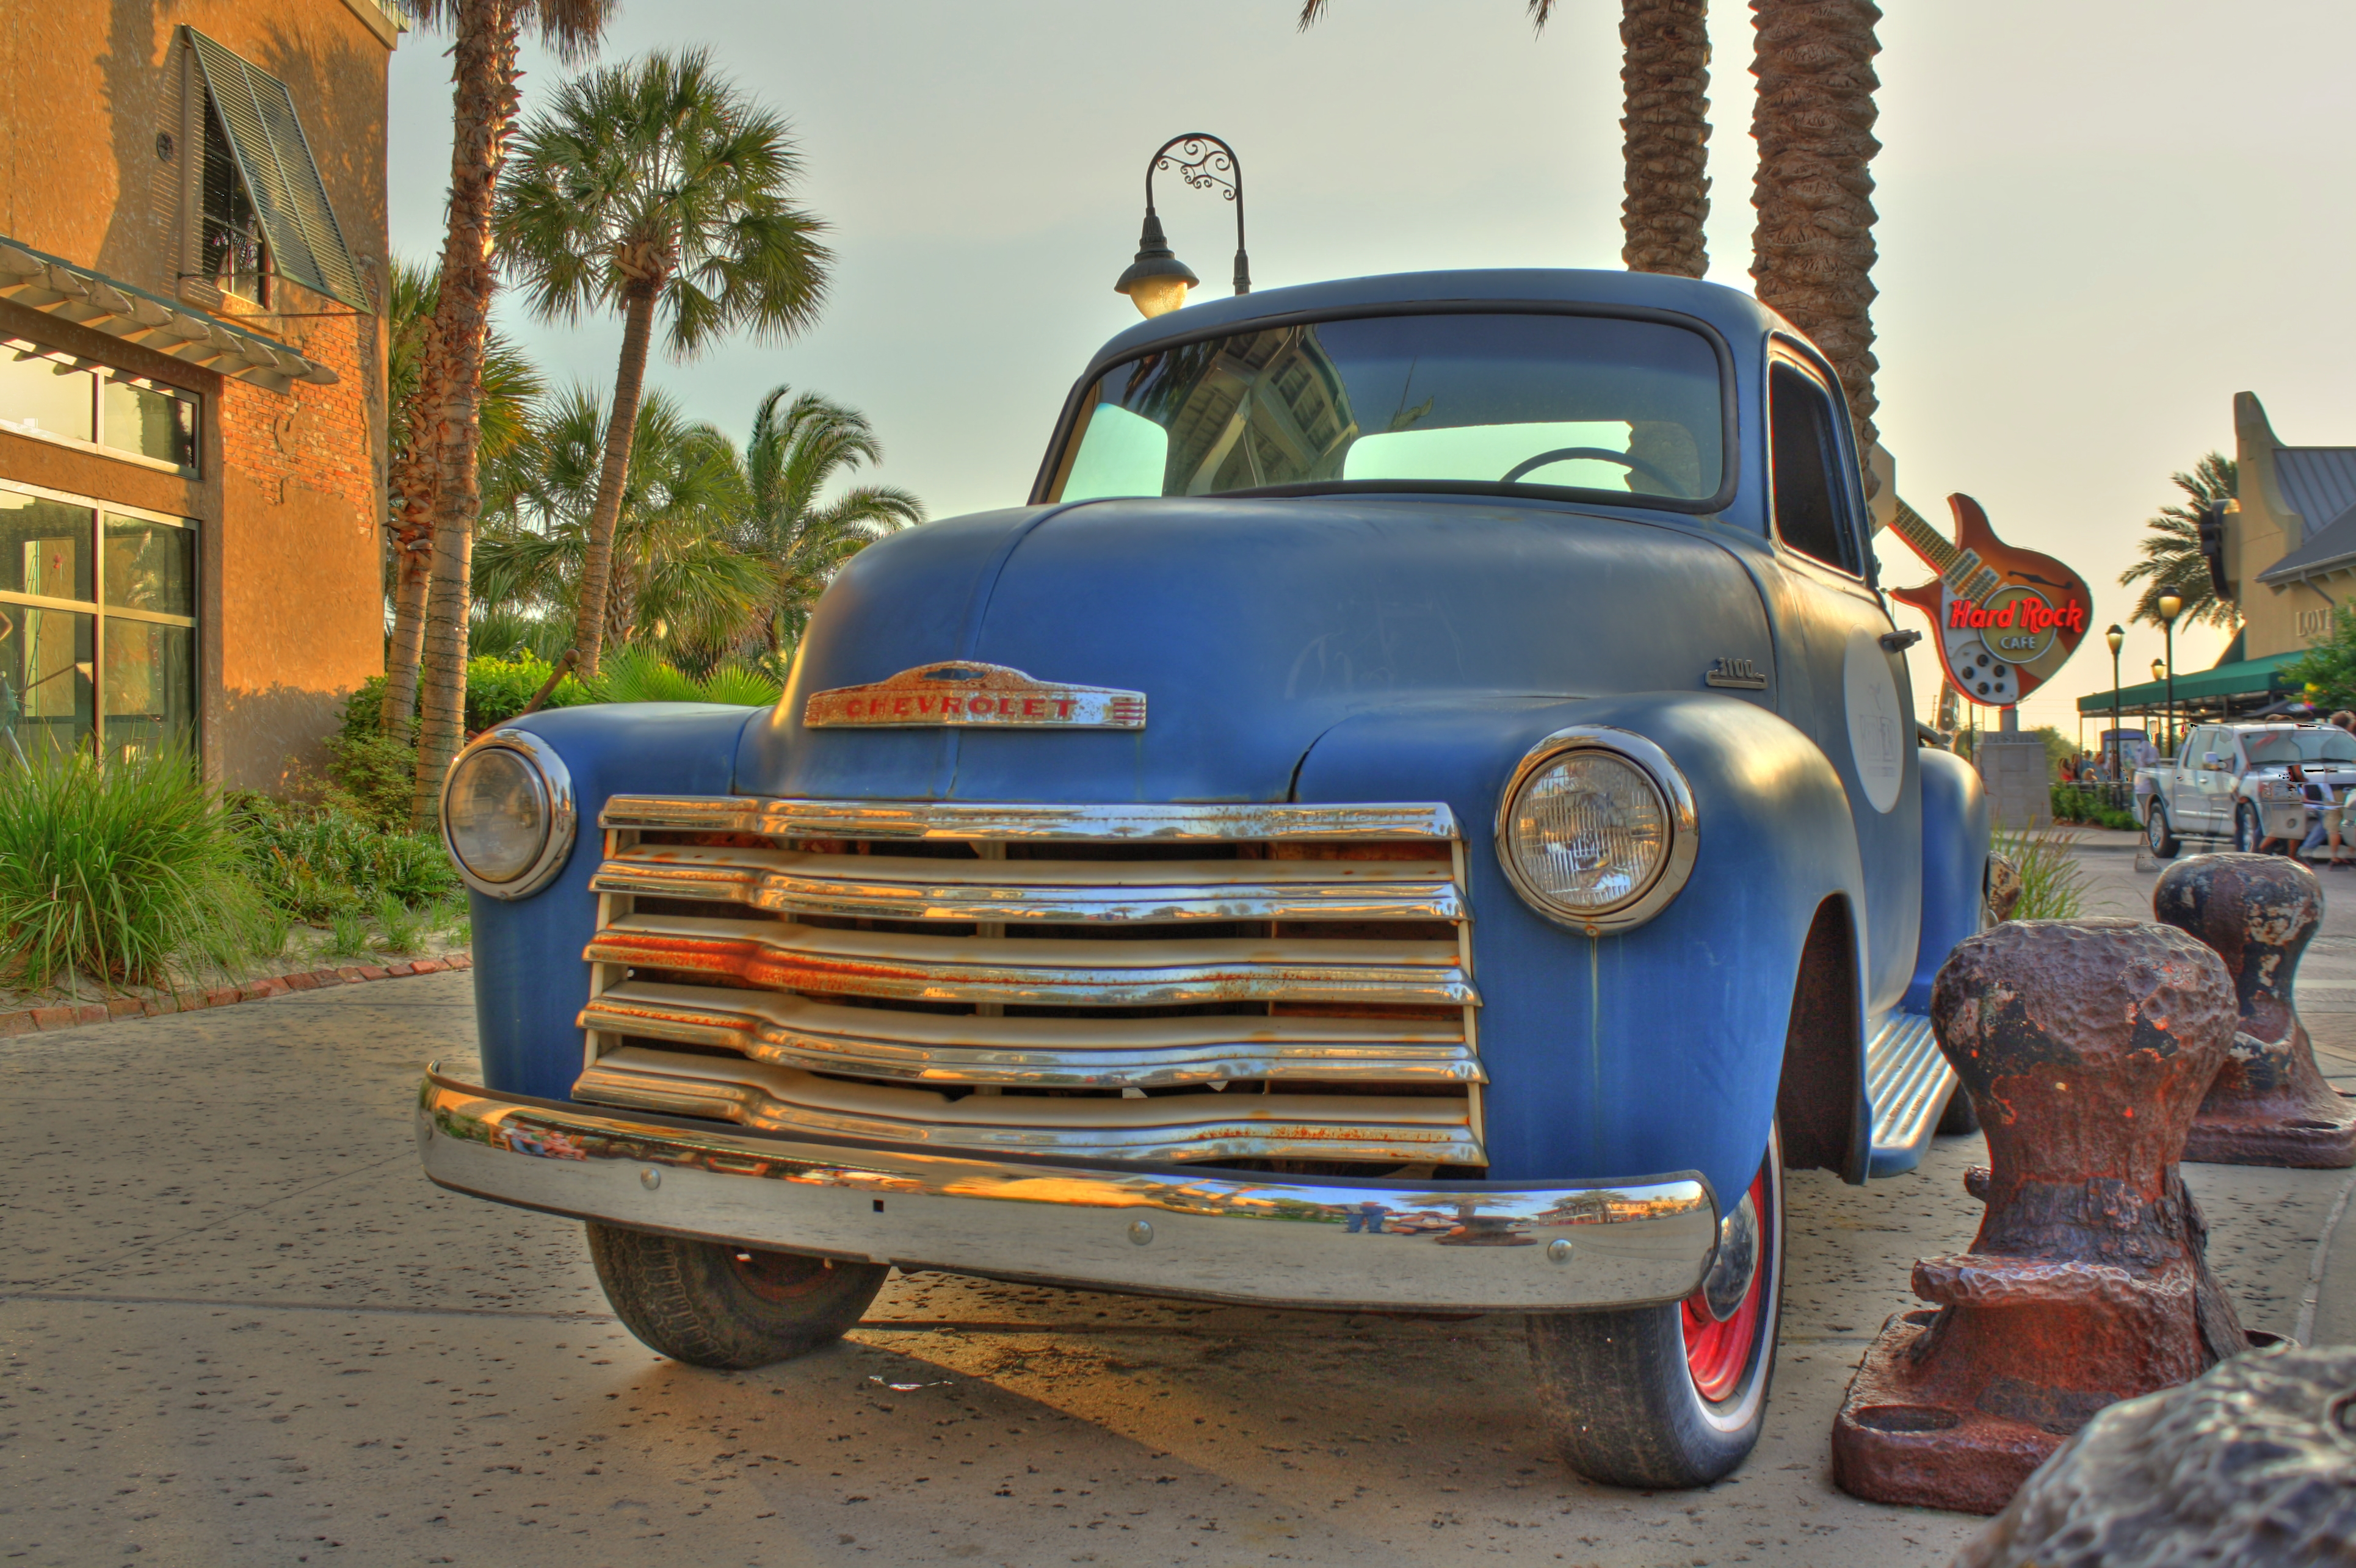 OLD CHEVY TRUCK | HDR creme